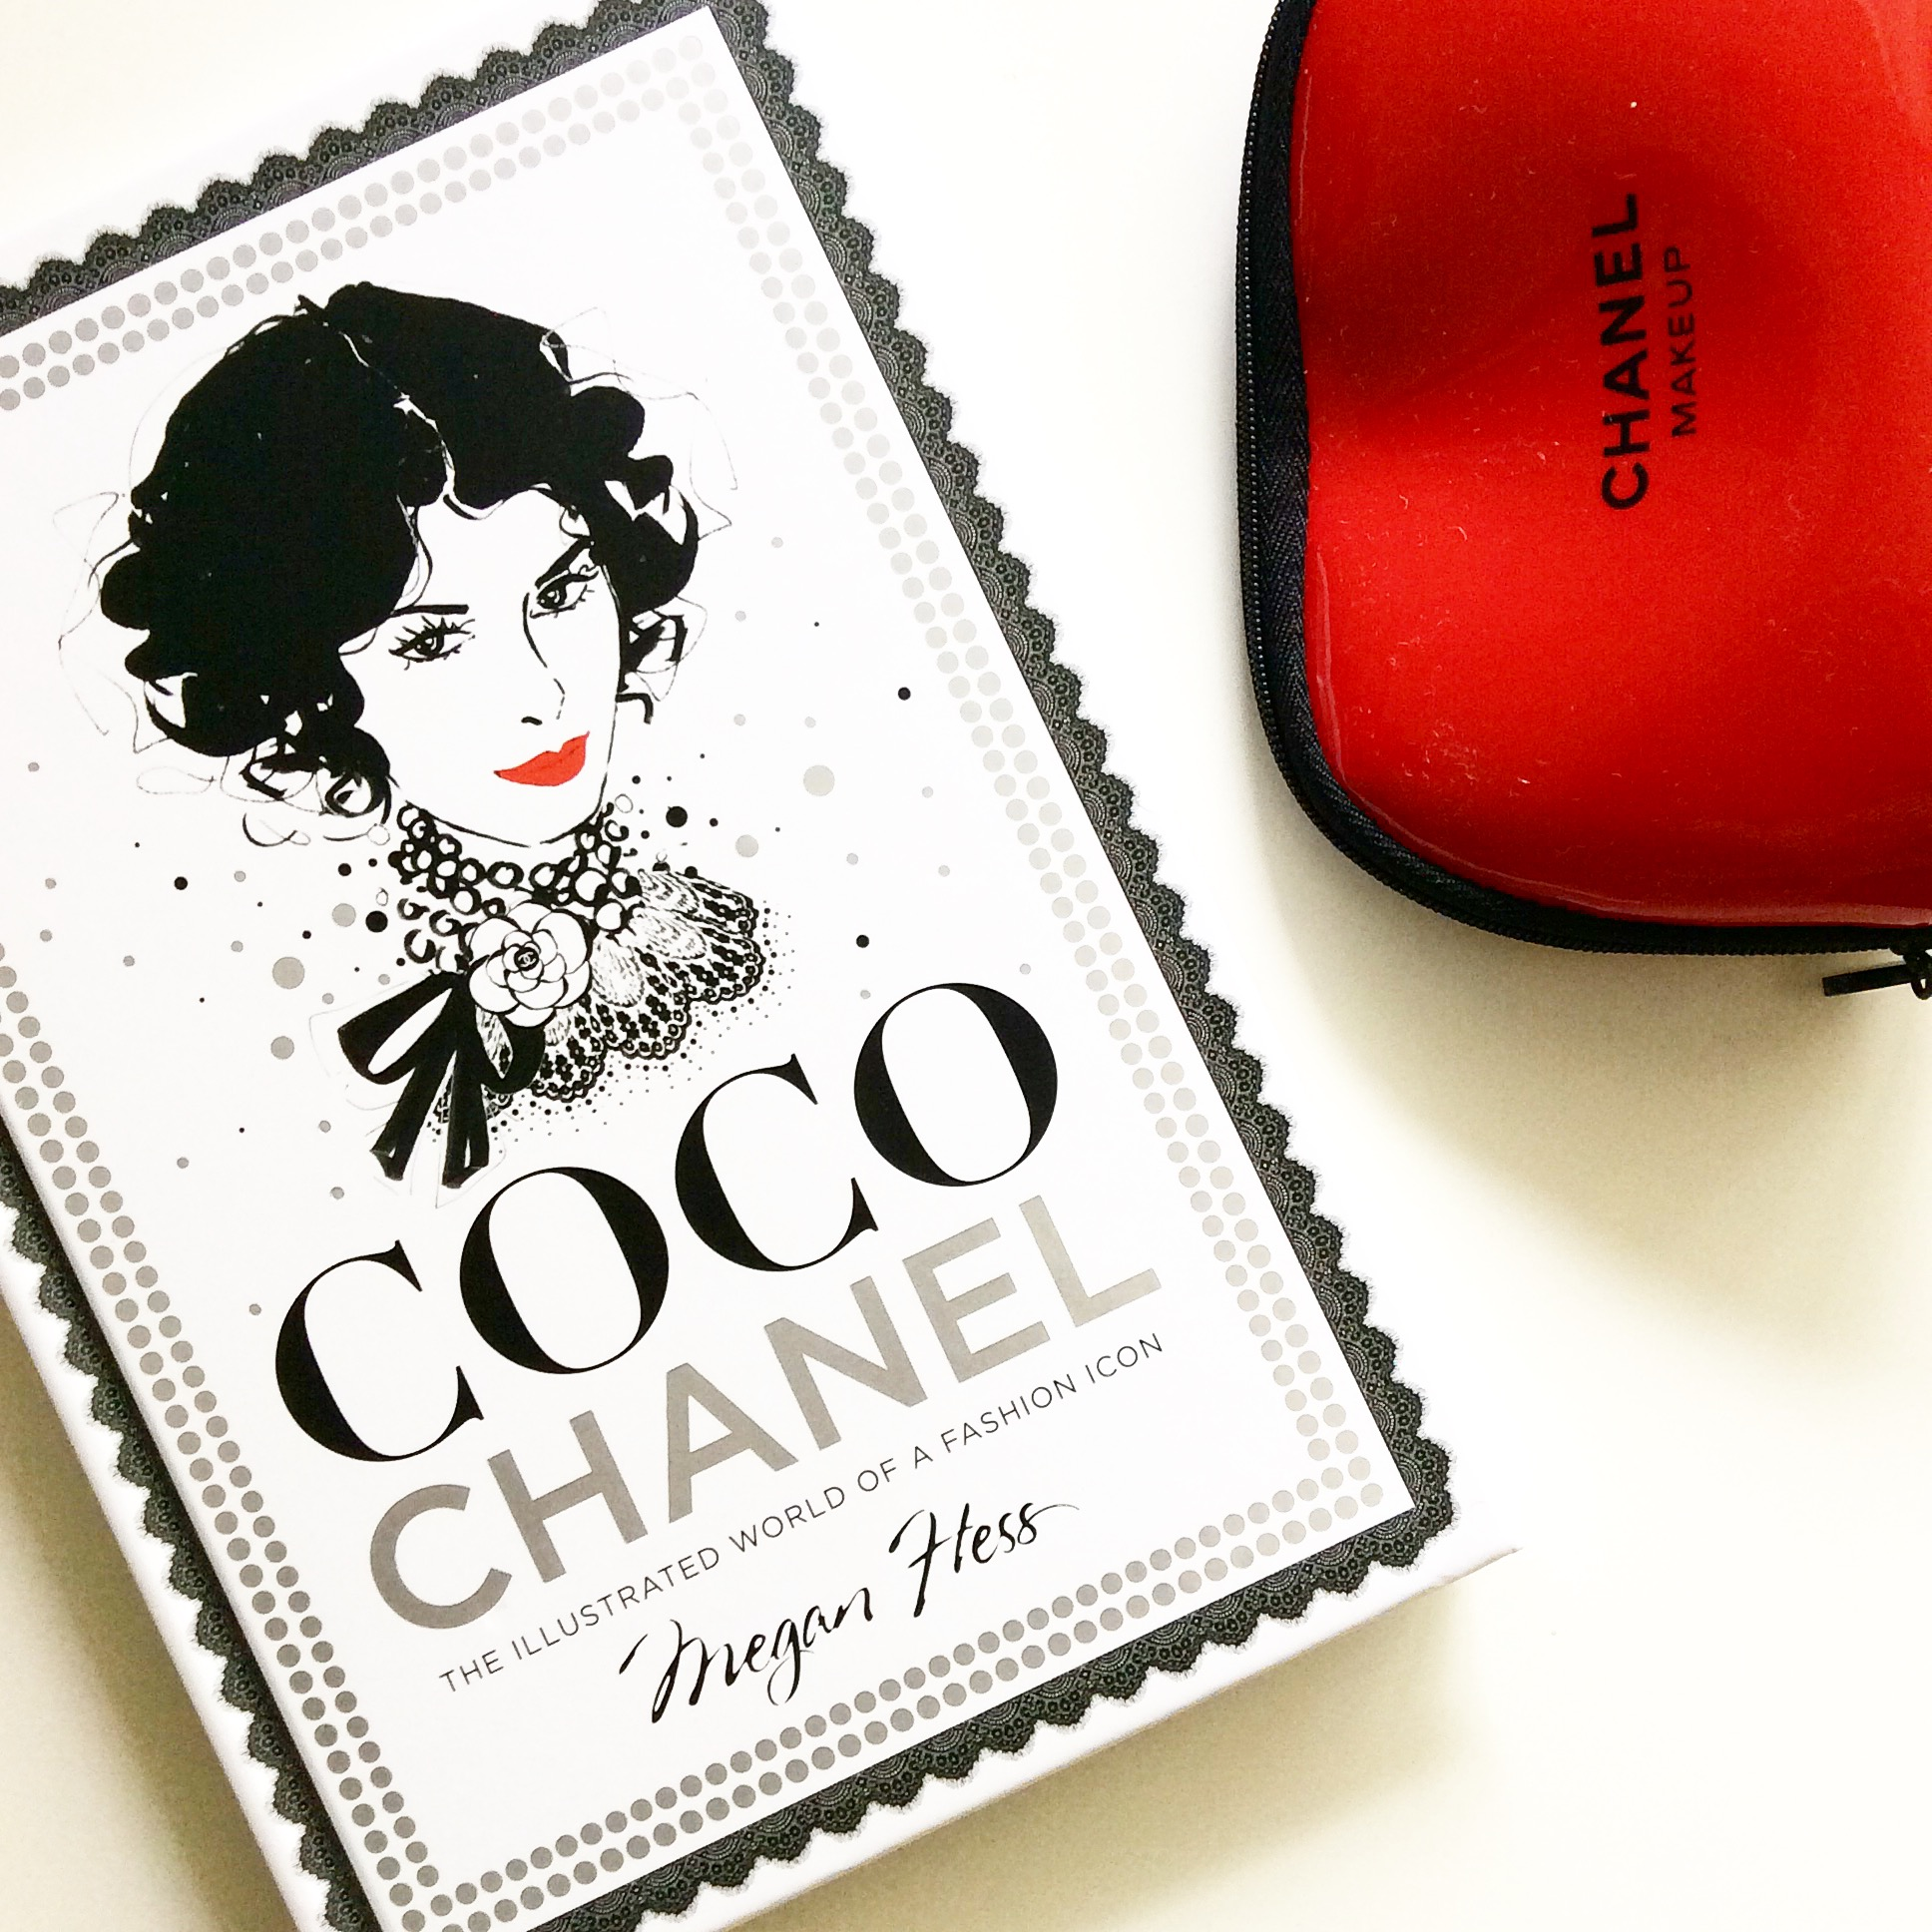 Coco Chanel Quotes About Love